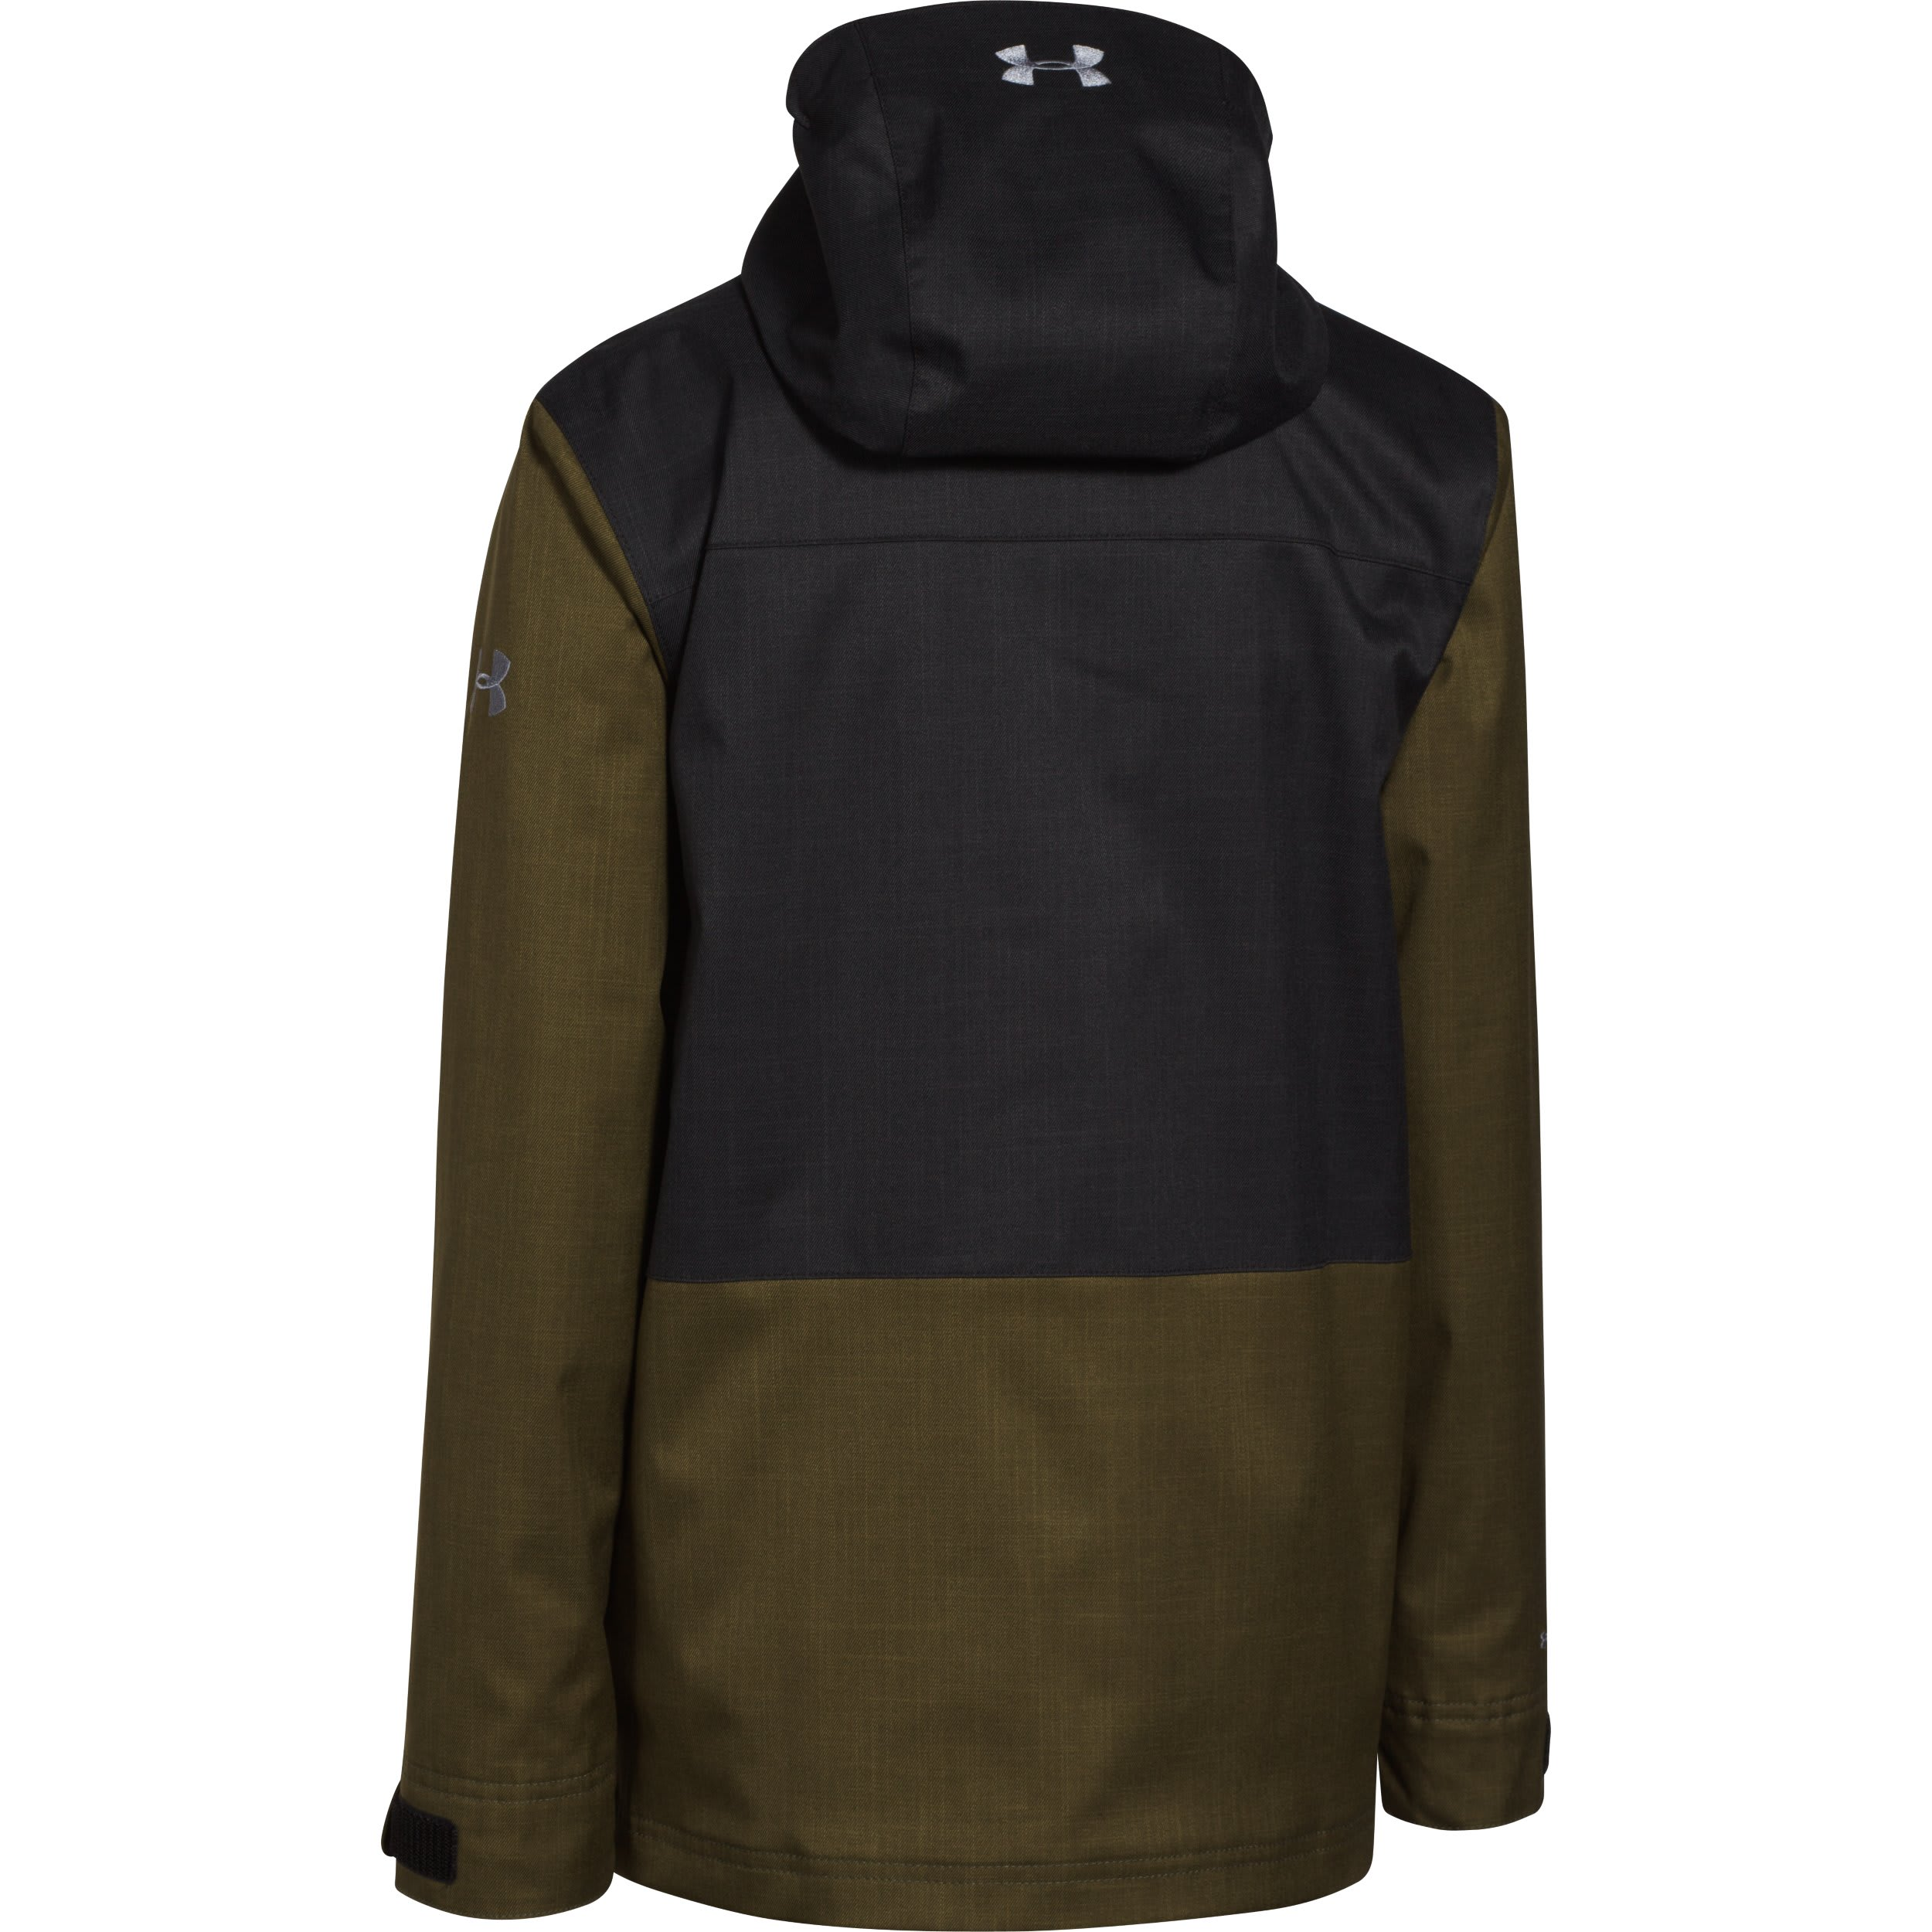 8fac4a3a Under Armour Coldgear Infrared Wildwood 3-in-1 Snowboard Jacket - Kids